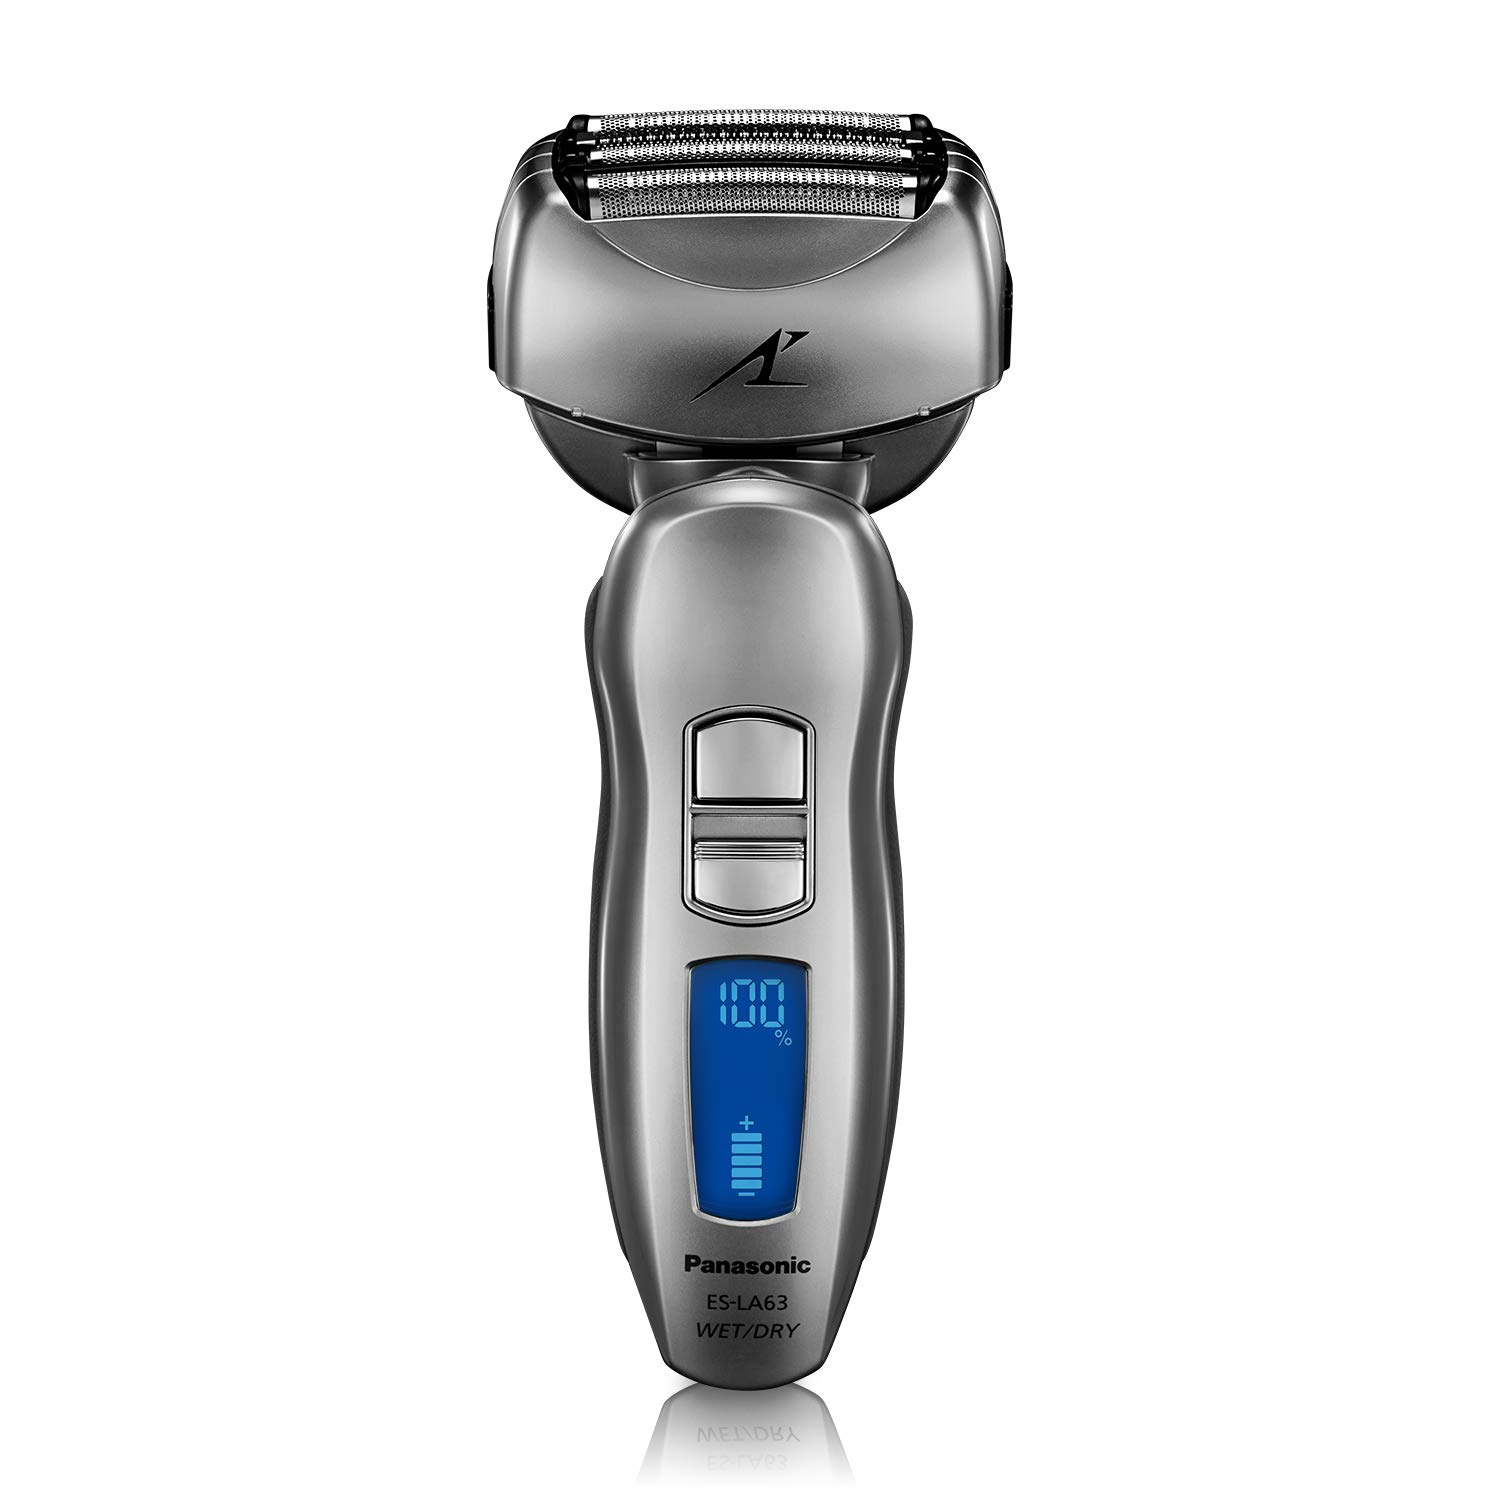 Top 8 Best Electric Razors under $50 to $100 (2020 Reviews) 6